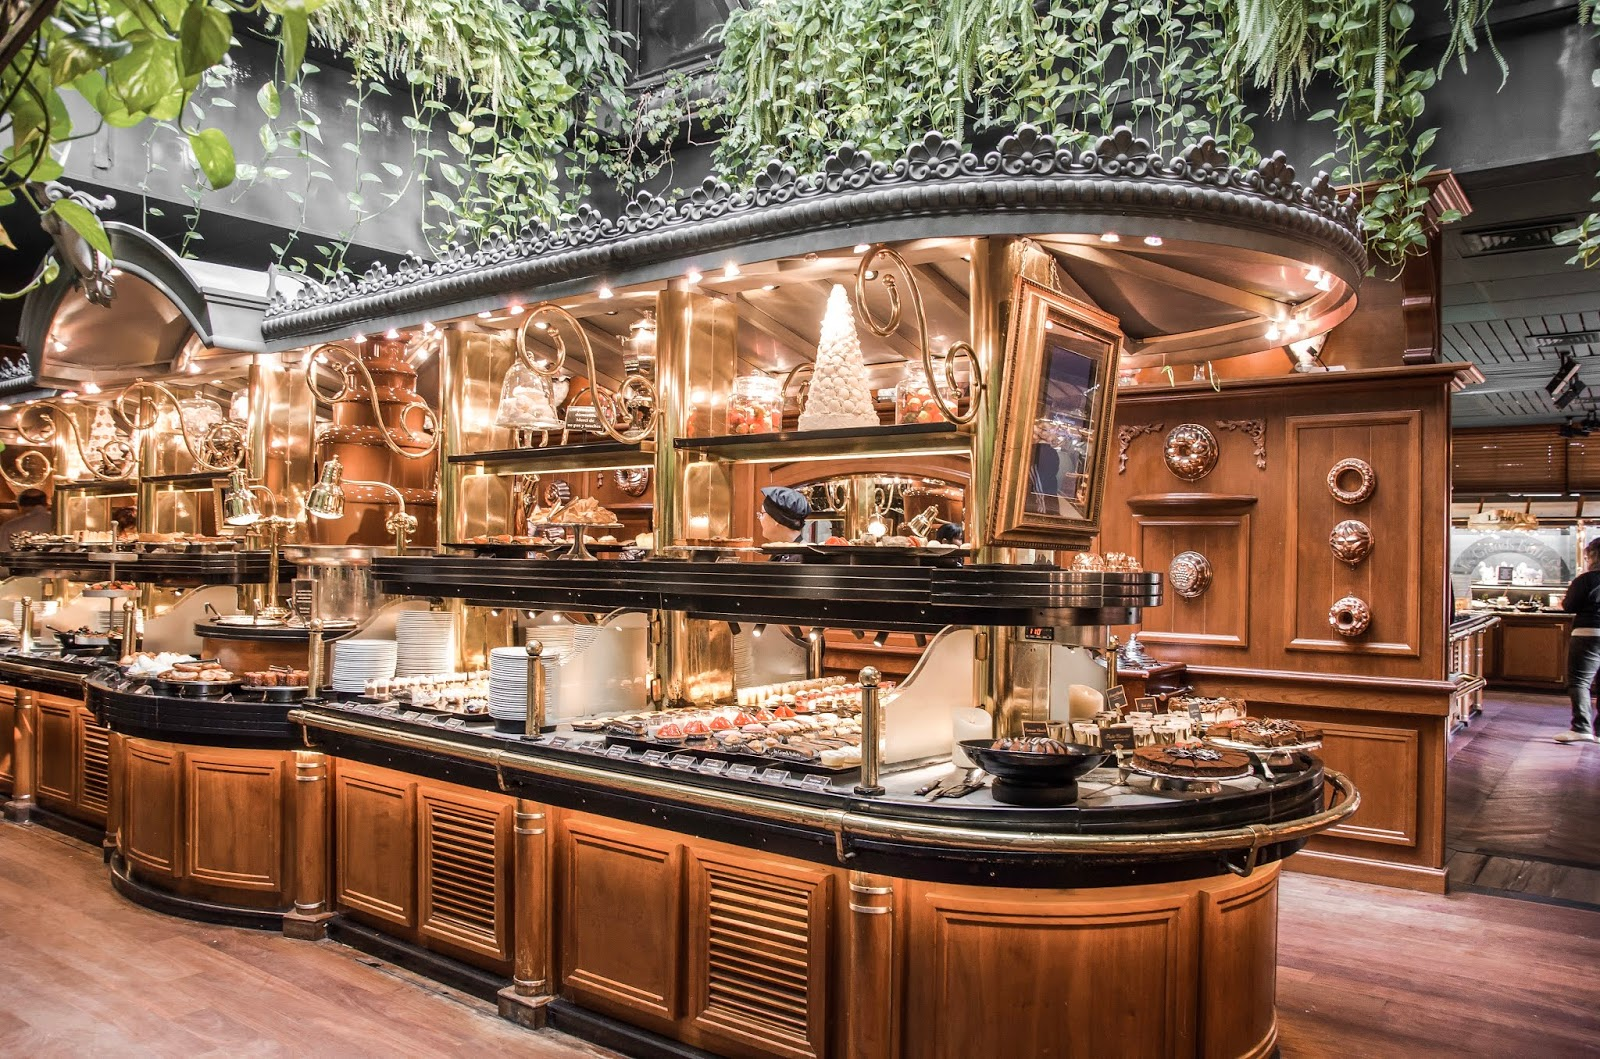 Les Grands Buffets Narbonne Francia Narbonne Y Les Grands Buffets Mvesblog